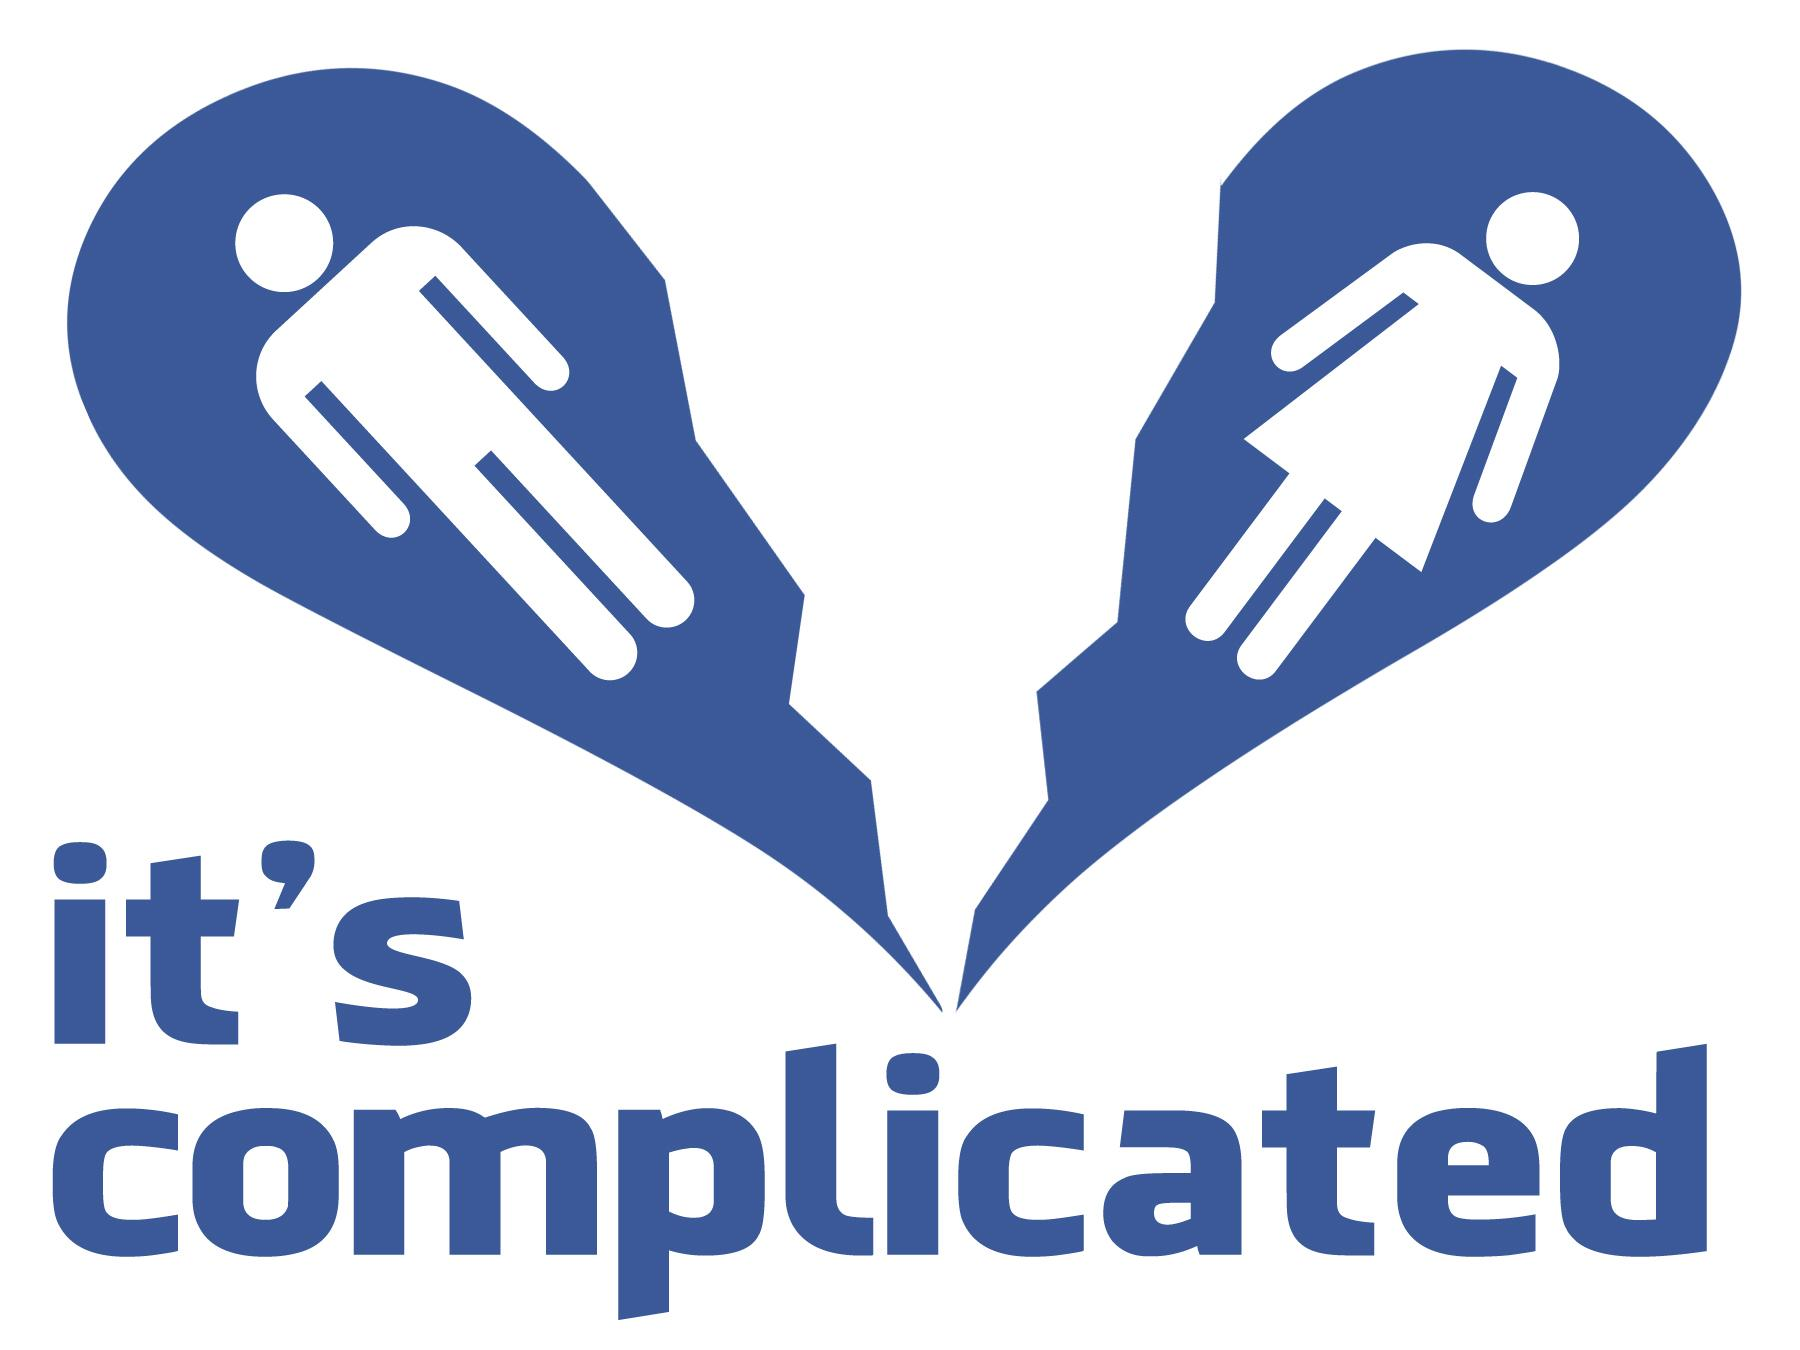 dating its complicated videos Dating men and trying to understand what he really means when he says certain things dating men: when he says x he means y life can be complicated.